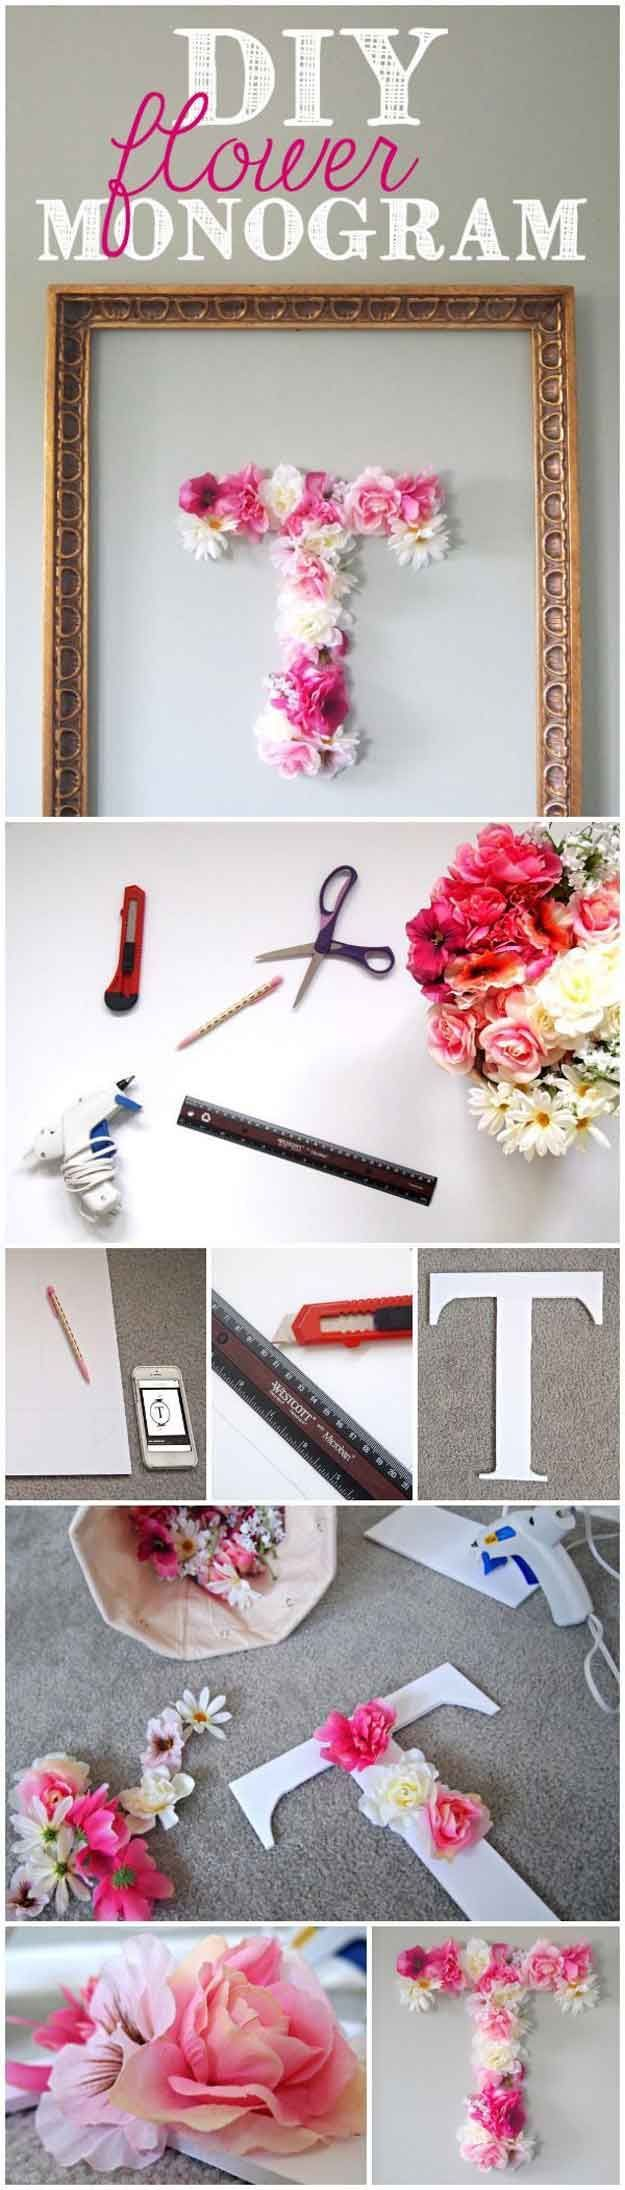 Easy diy projects for teenage girls rooms - Cool Wall Art Room Decorations For Teen Bedroom Diy Flower Monogram By Diy Ready At